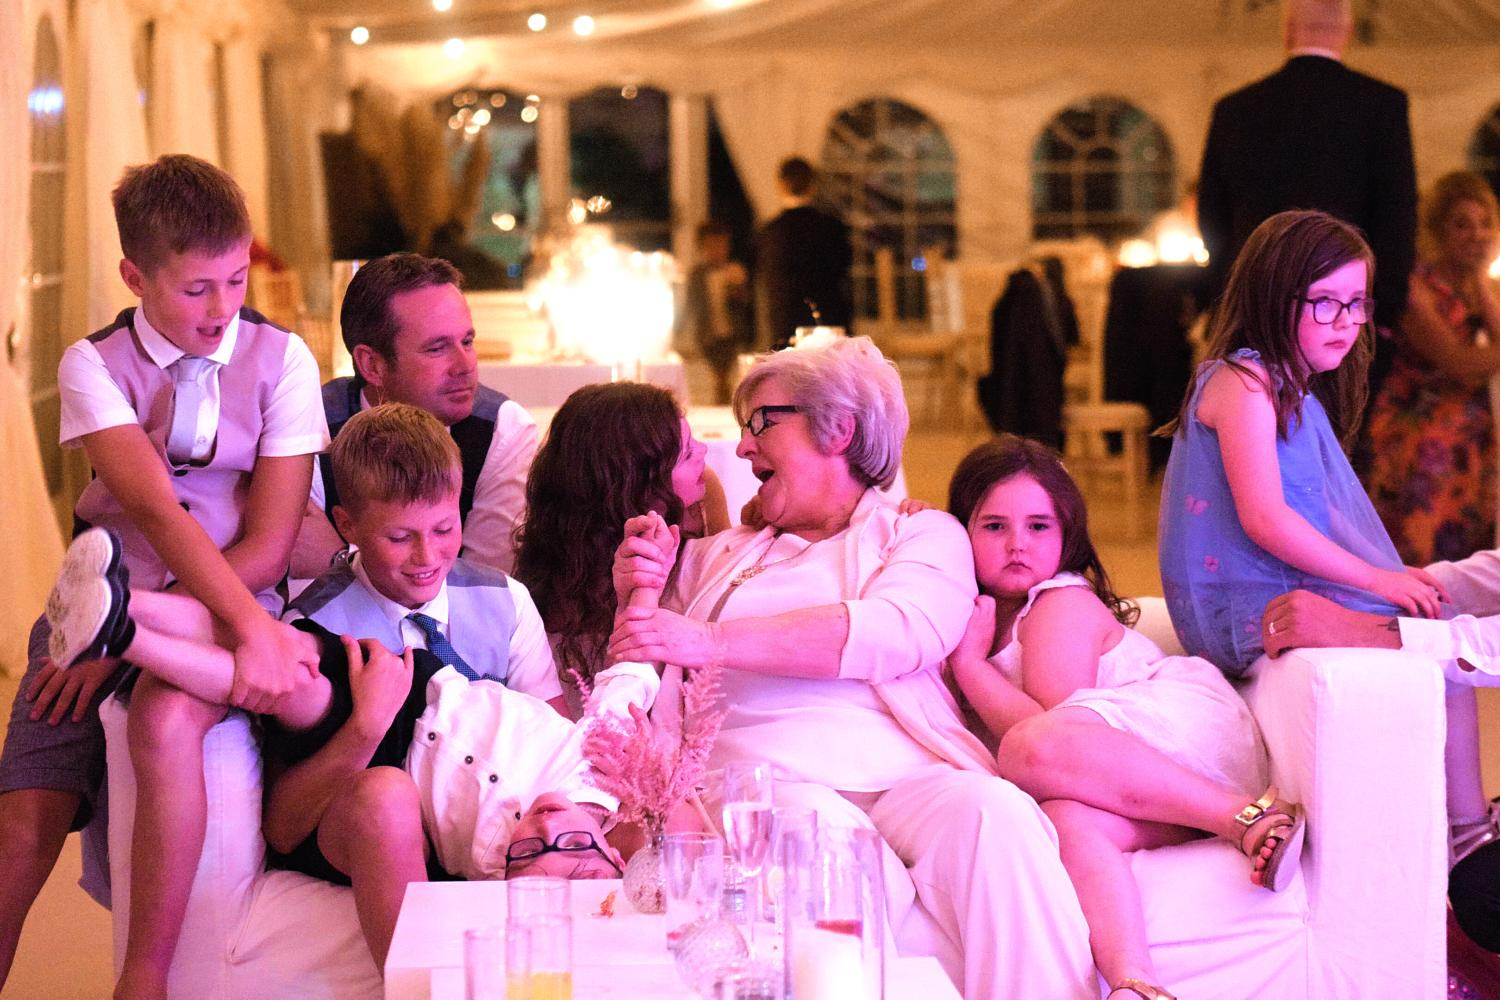 A grandmother plays with her grandchildren at a wedding